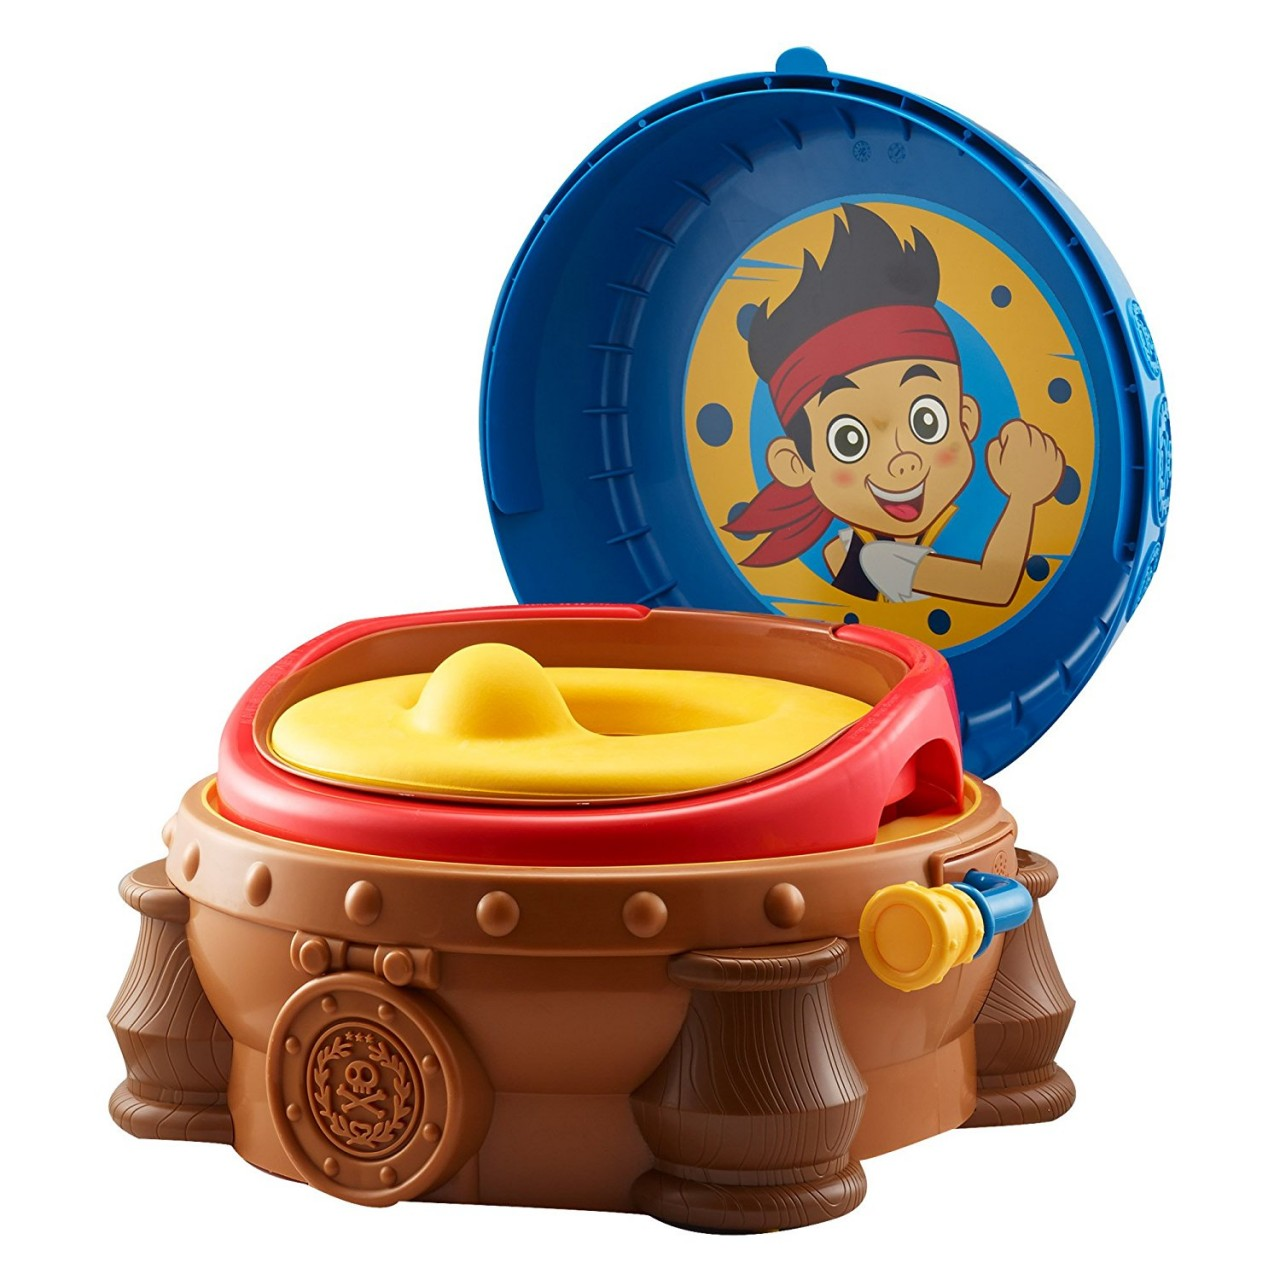 Penico Port?til Para Crian?as The First Years Disney Junior Jake And The Never Land Pirates 3-In-1 Potty System